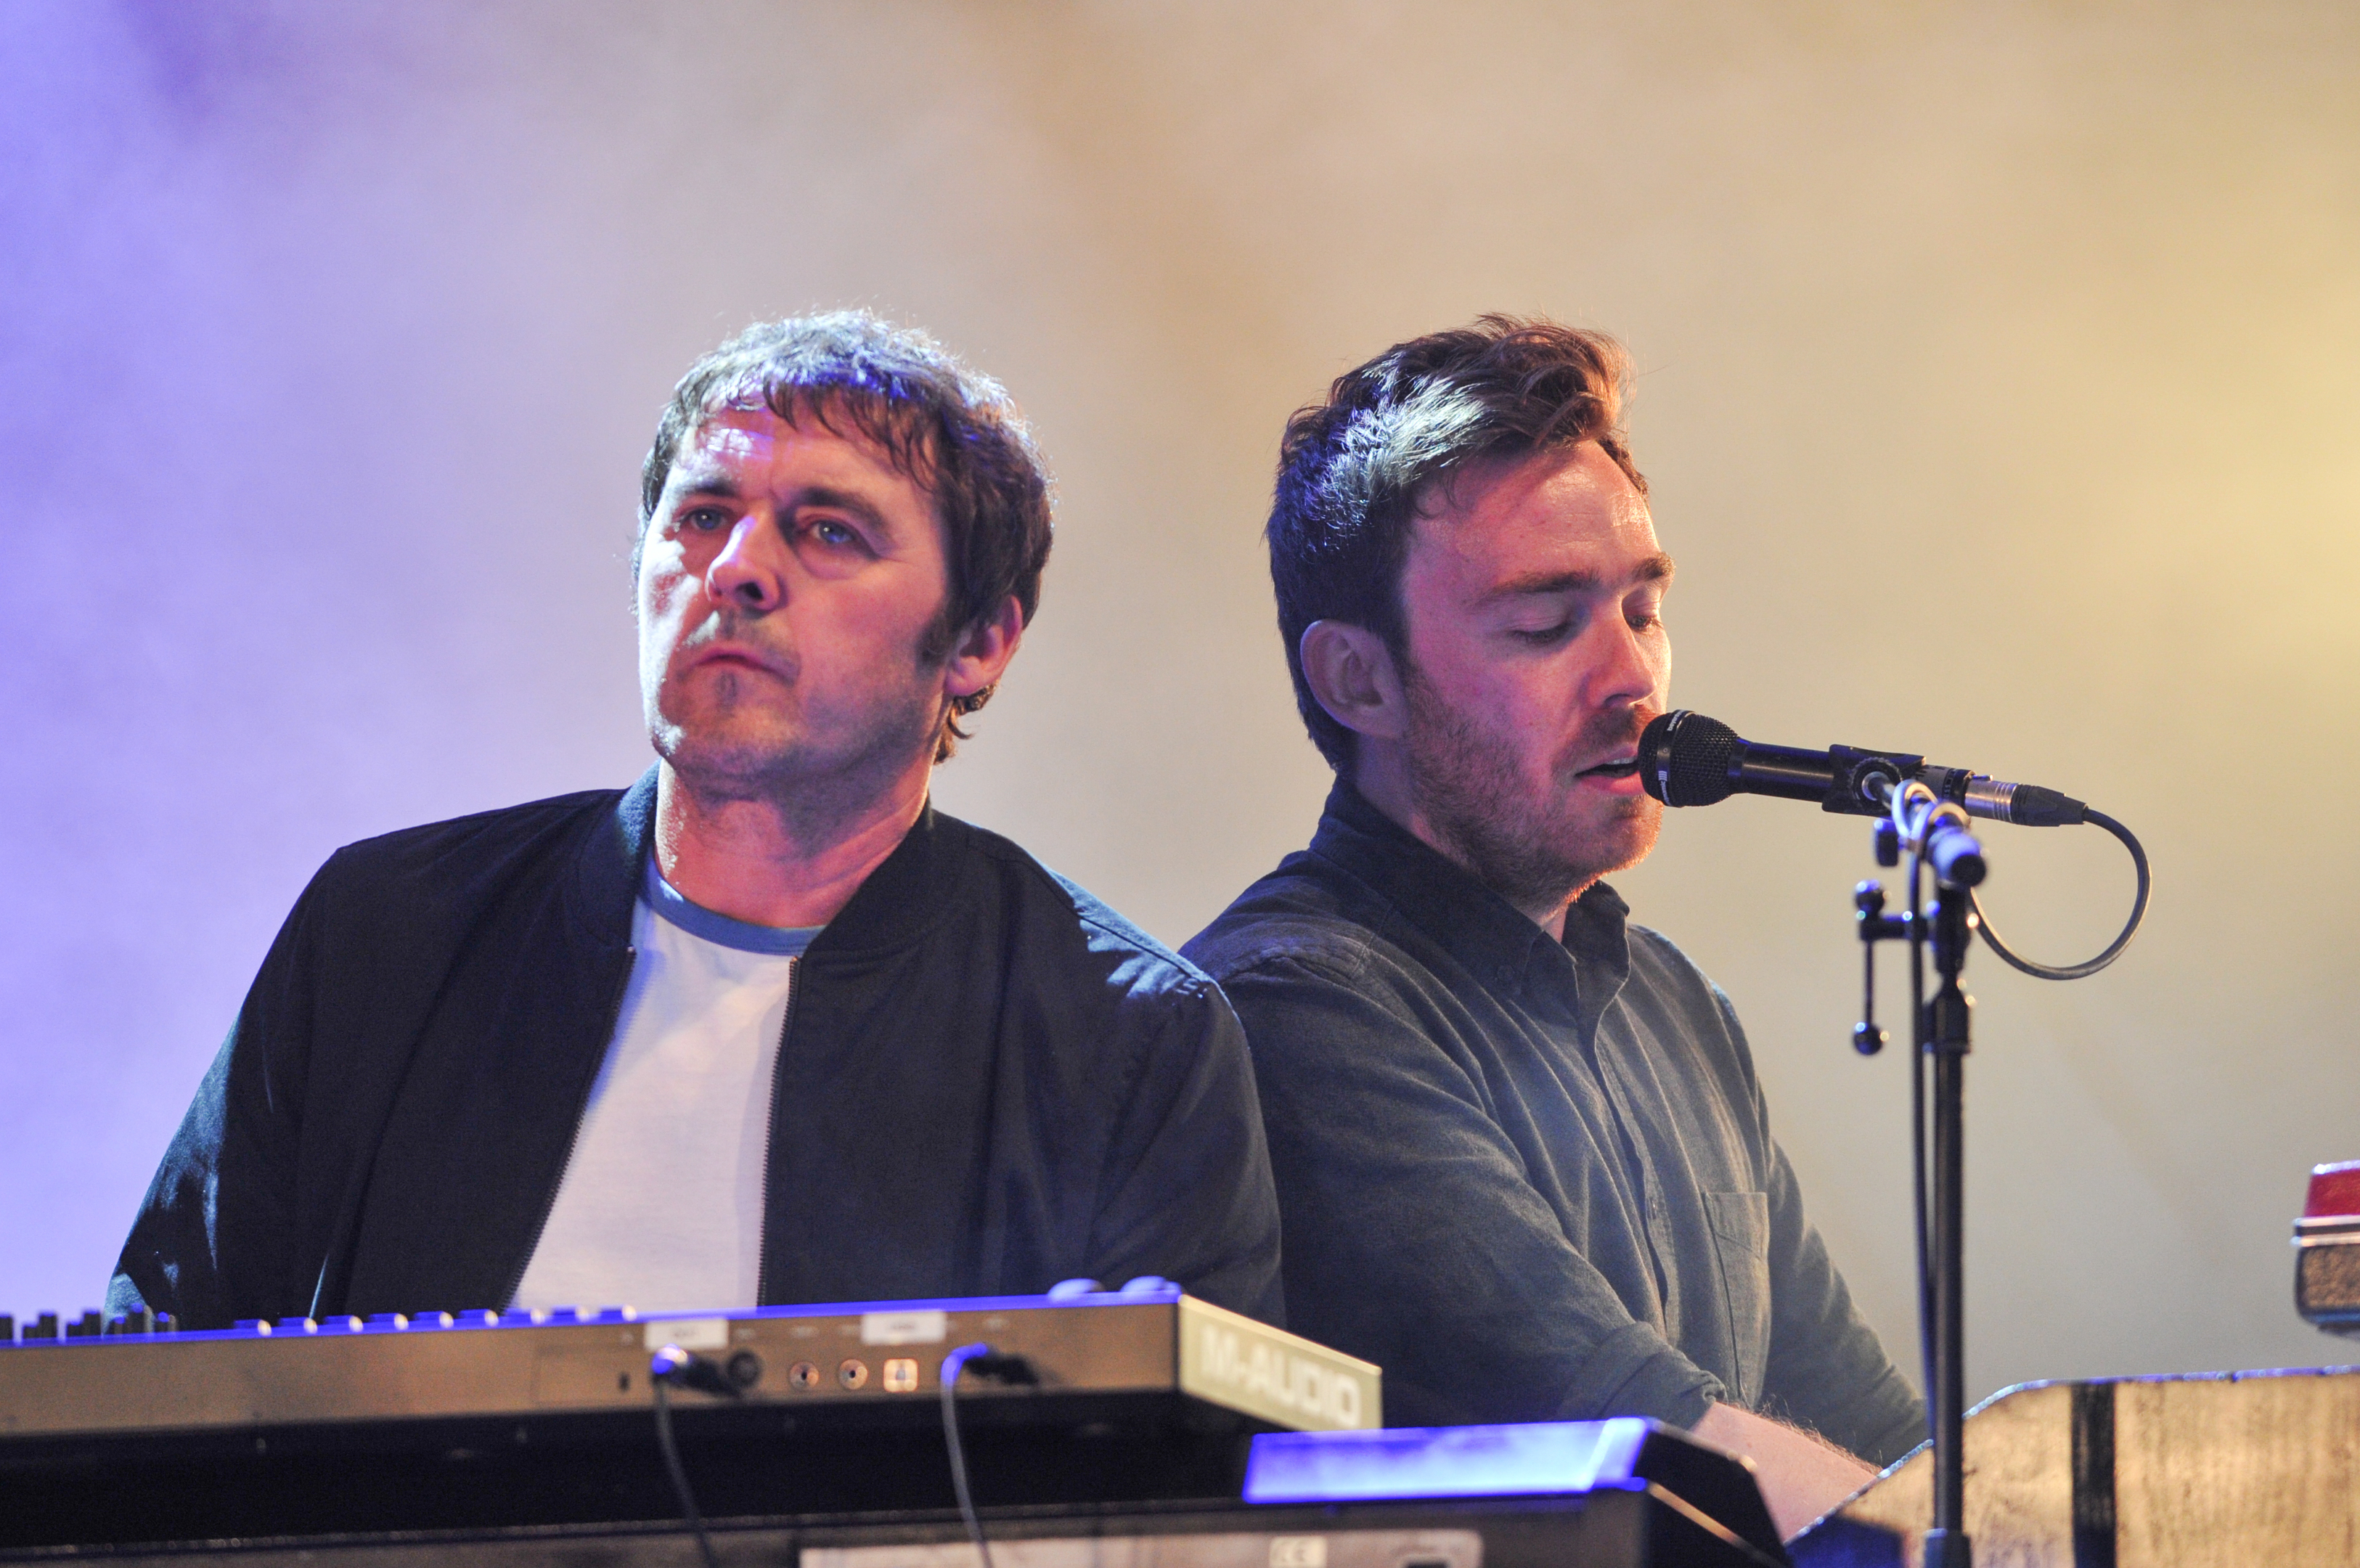 The Charlatans perform on the Garden Stage with members of Frightened rabbit.